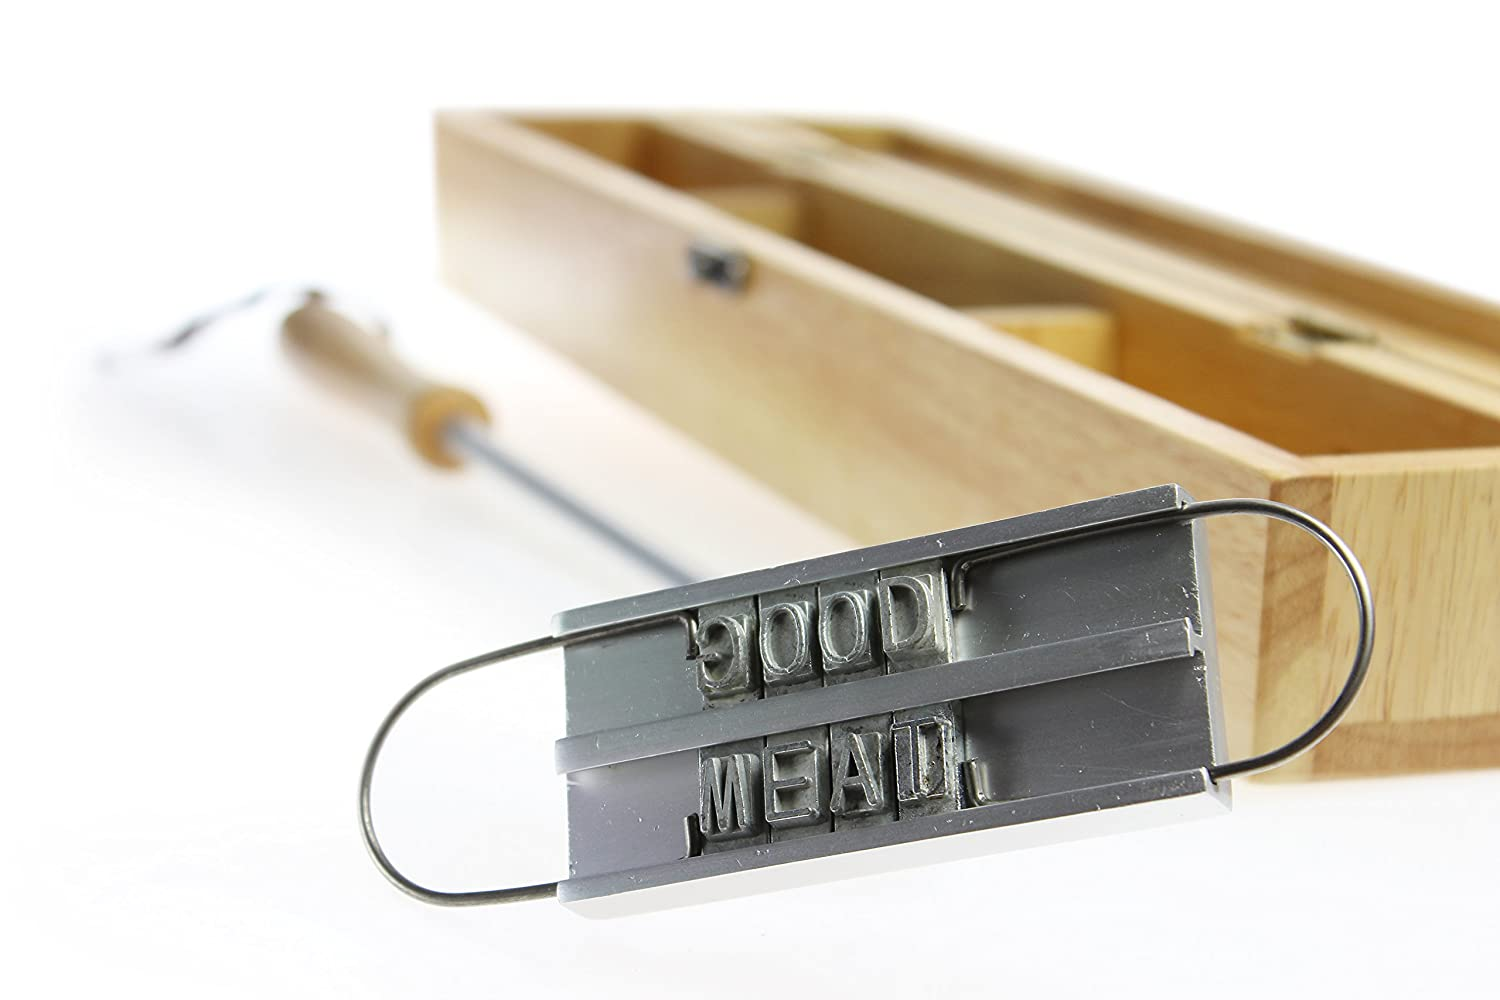 BBQ Branding Iron - With Changeable Letters And Wooden Box- Barbecue Accessories – The Crazy Kitchen Branding Tool – Gift Ideas For Men And Women